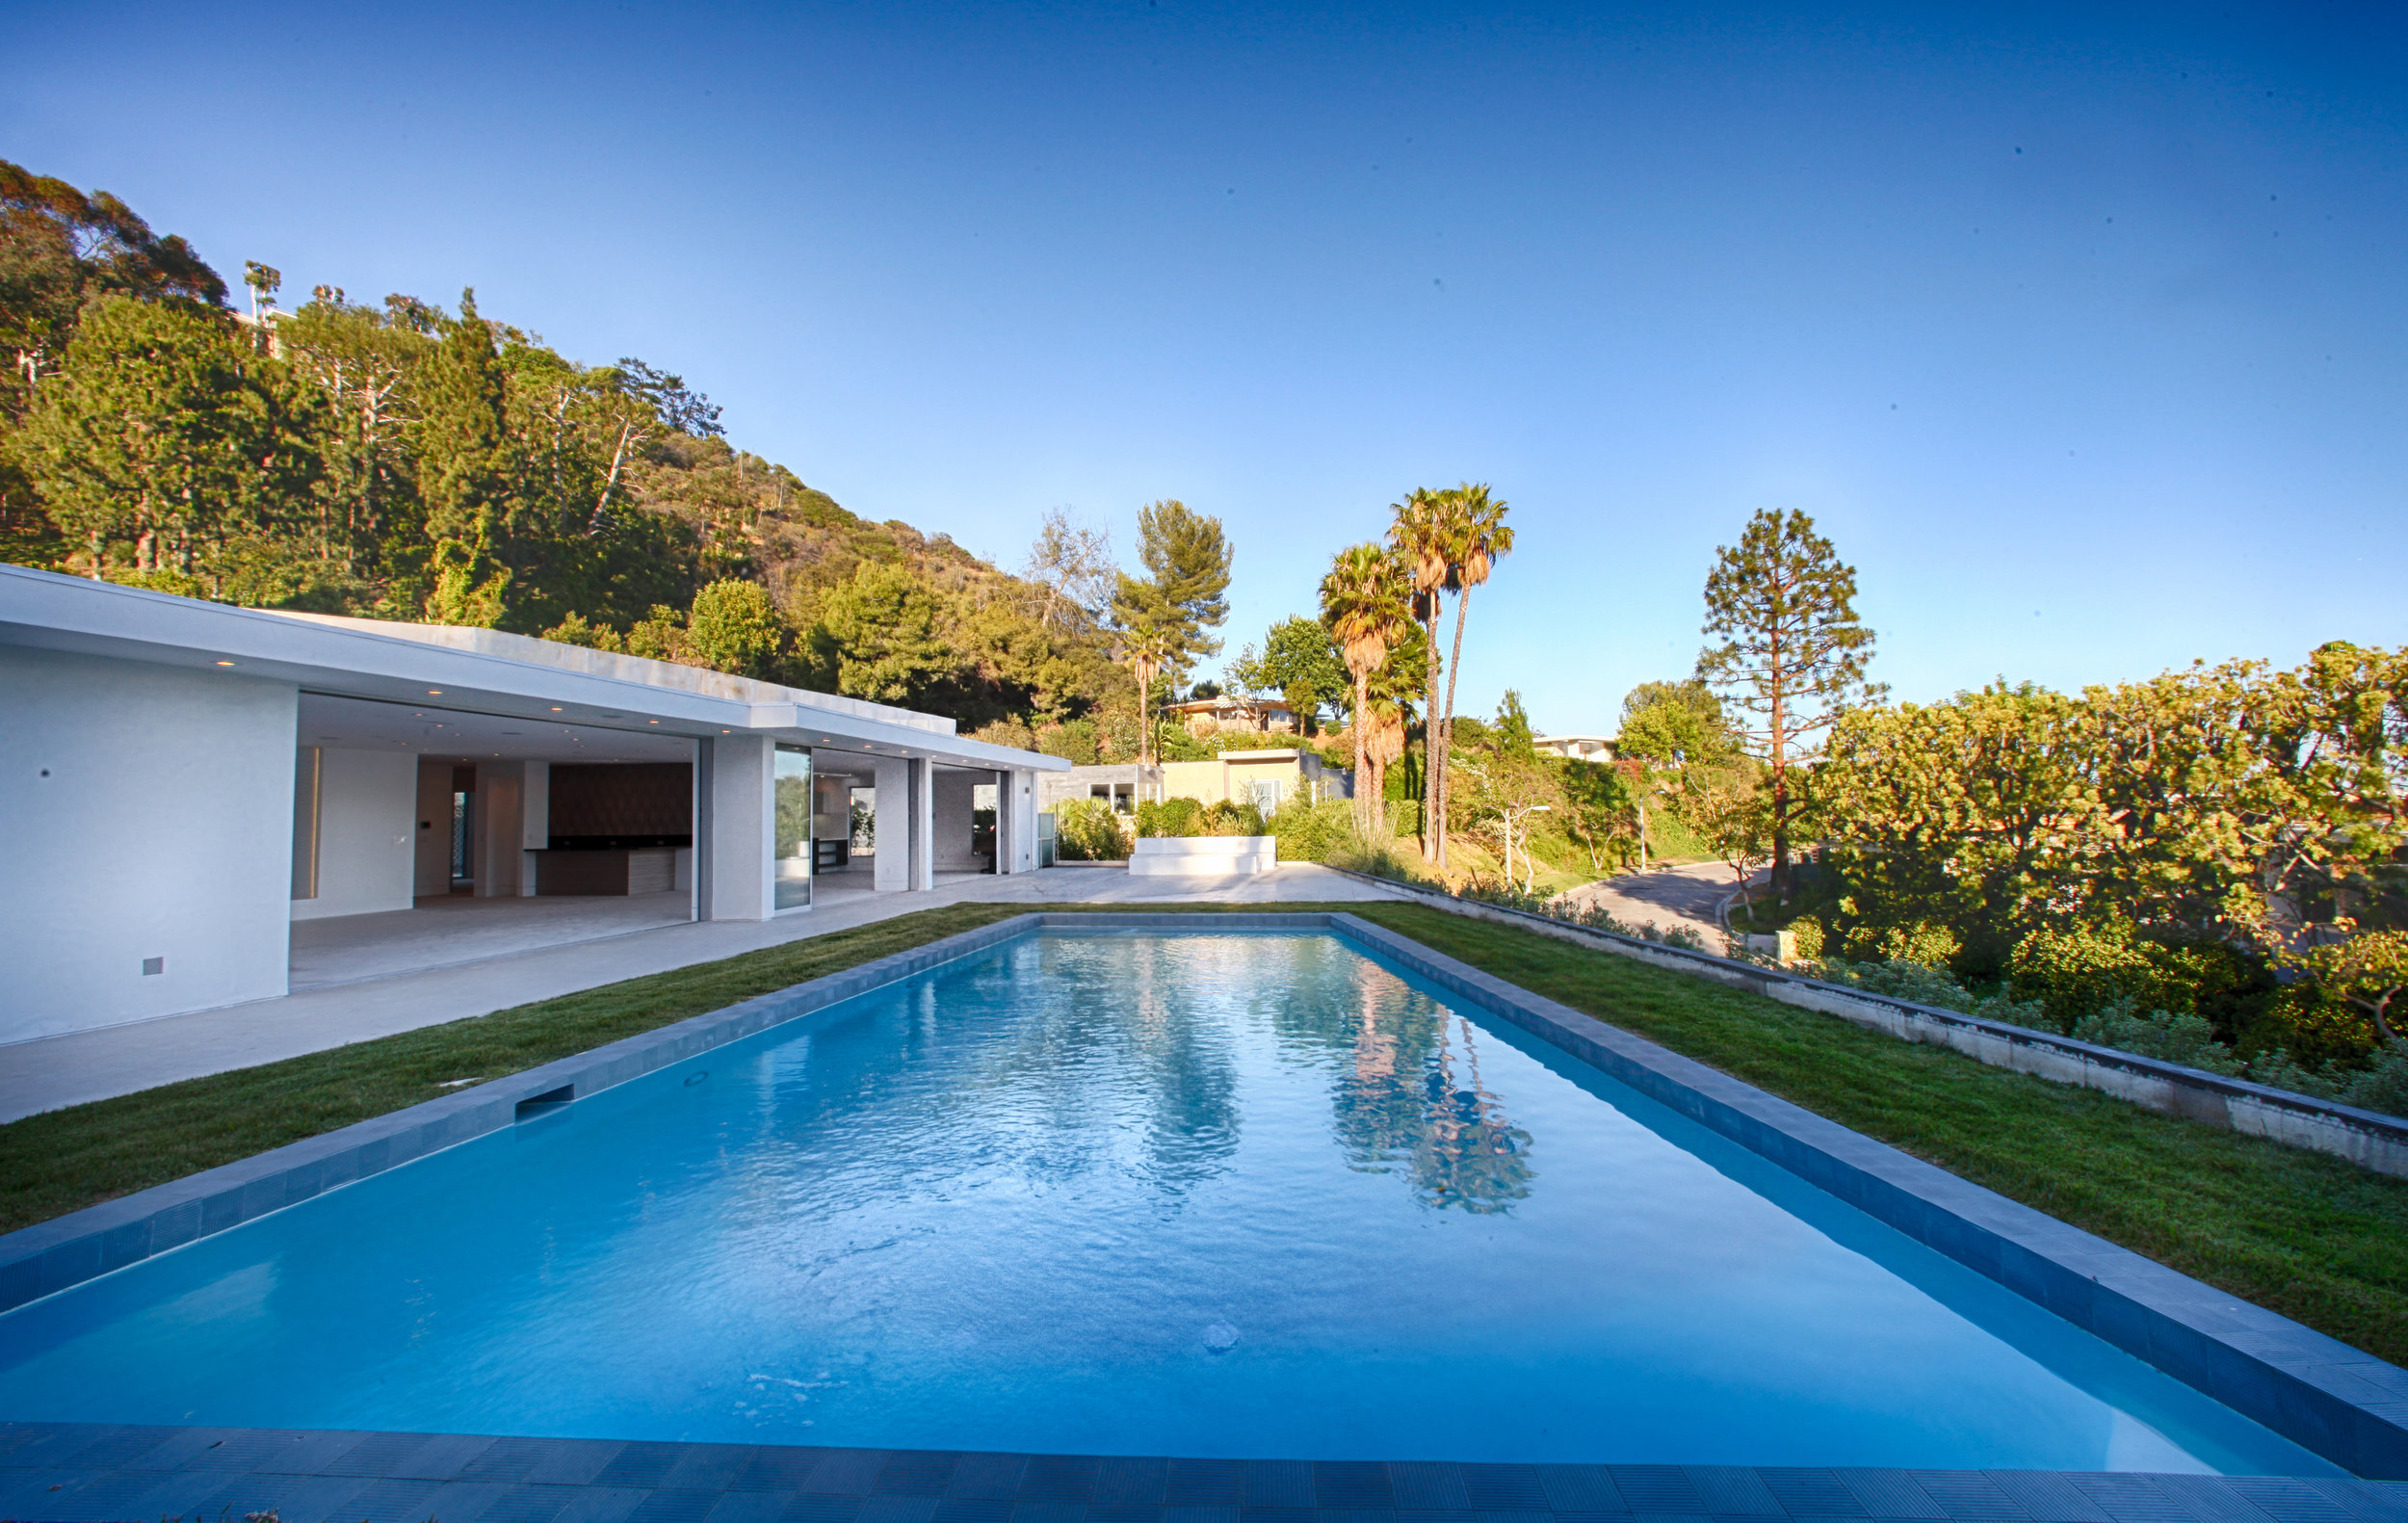 DABNEY LANE | BEVERLY HILLS   This contemporary construction fits into the hillside with a streamlined minimalist frame. Indoor/outdoor design + pocket doors set the scene for timeless California living.